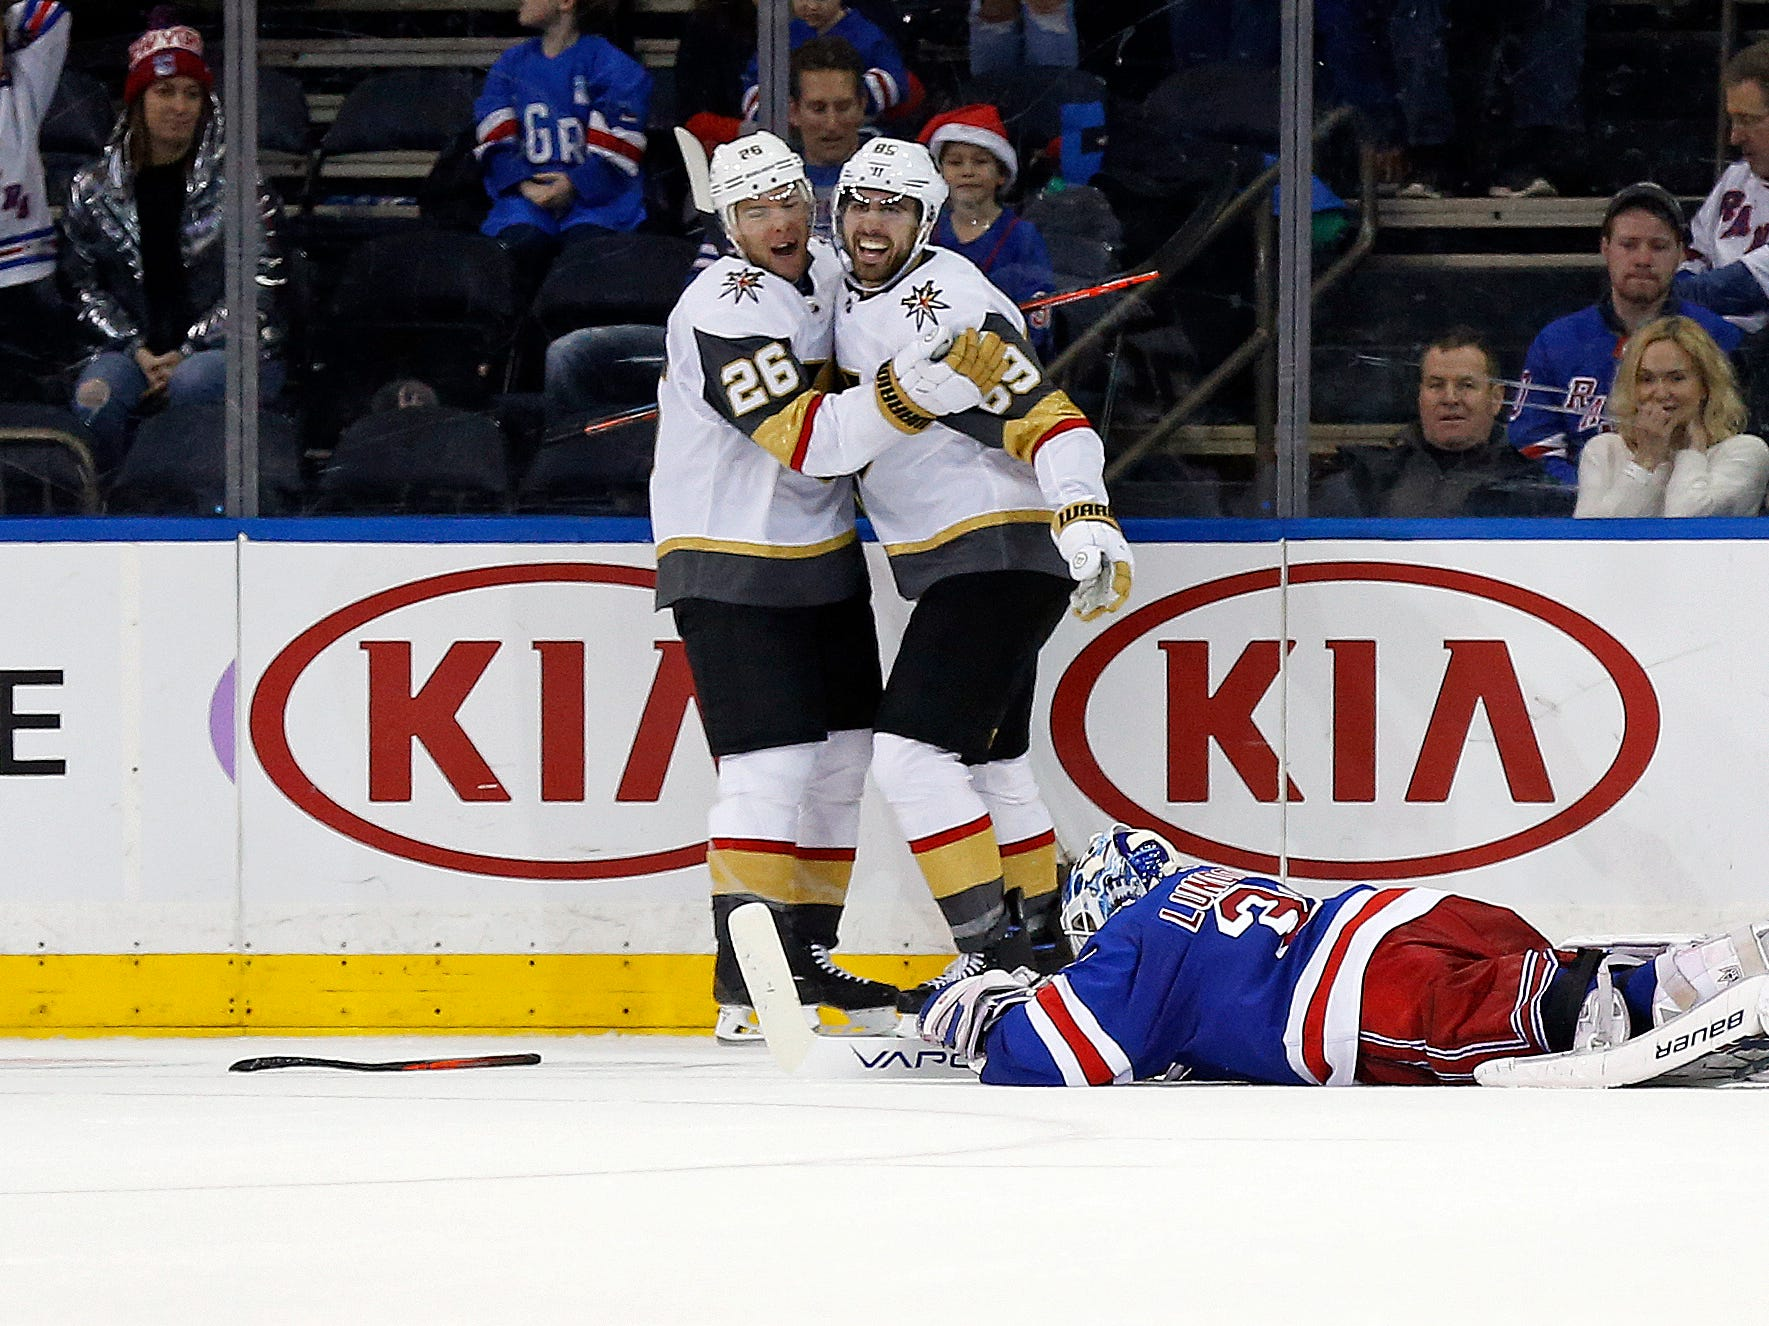 Dec 16: New York Rangers goaltender Henrik Lundqvist sprawls on the ice after giving up the game winning goal in overtime to Vegas Golden Knights right wing Alex Tuch (89), who celebrates with Paul Stastny (26) in  Madison Square Garden.